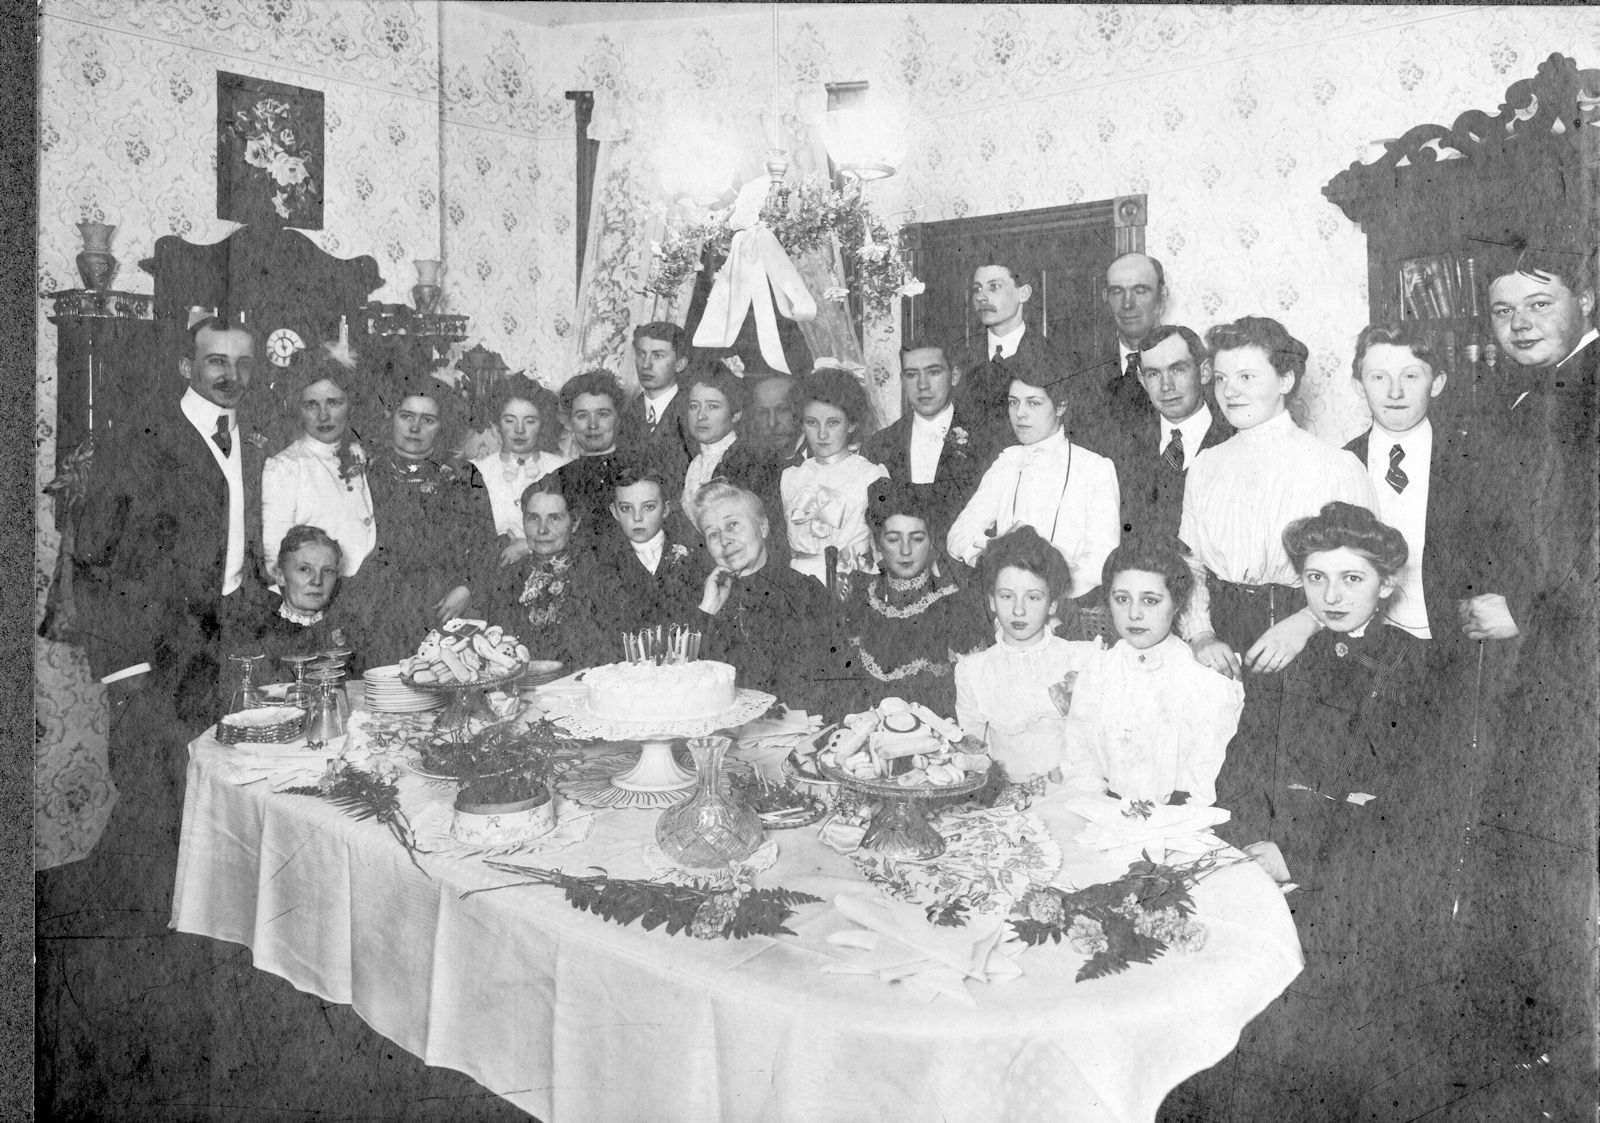 21st Birthday Celebration for Ernest John Rudolph in 1903